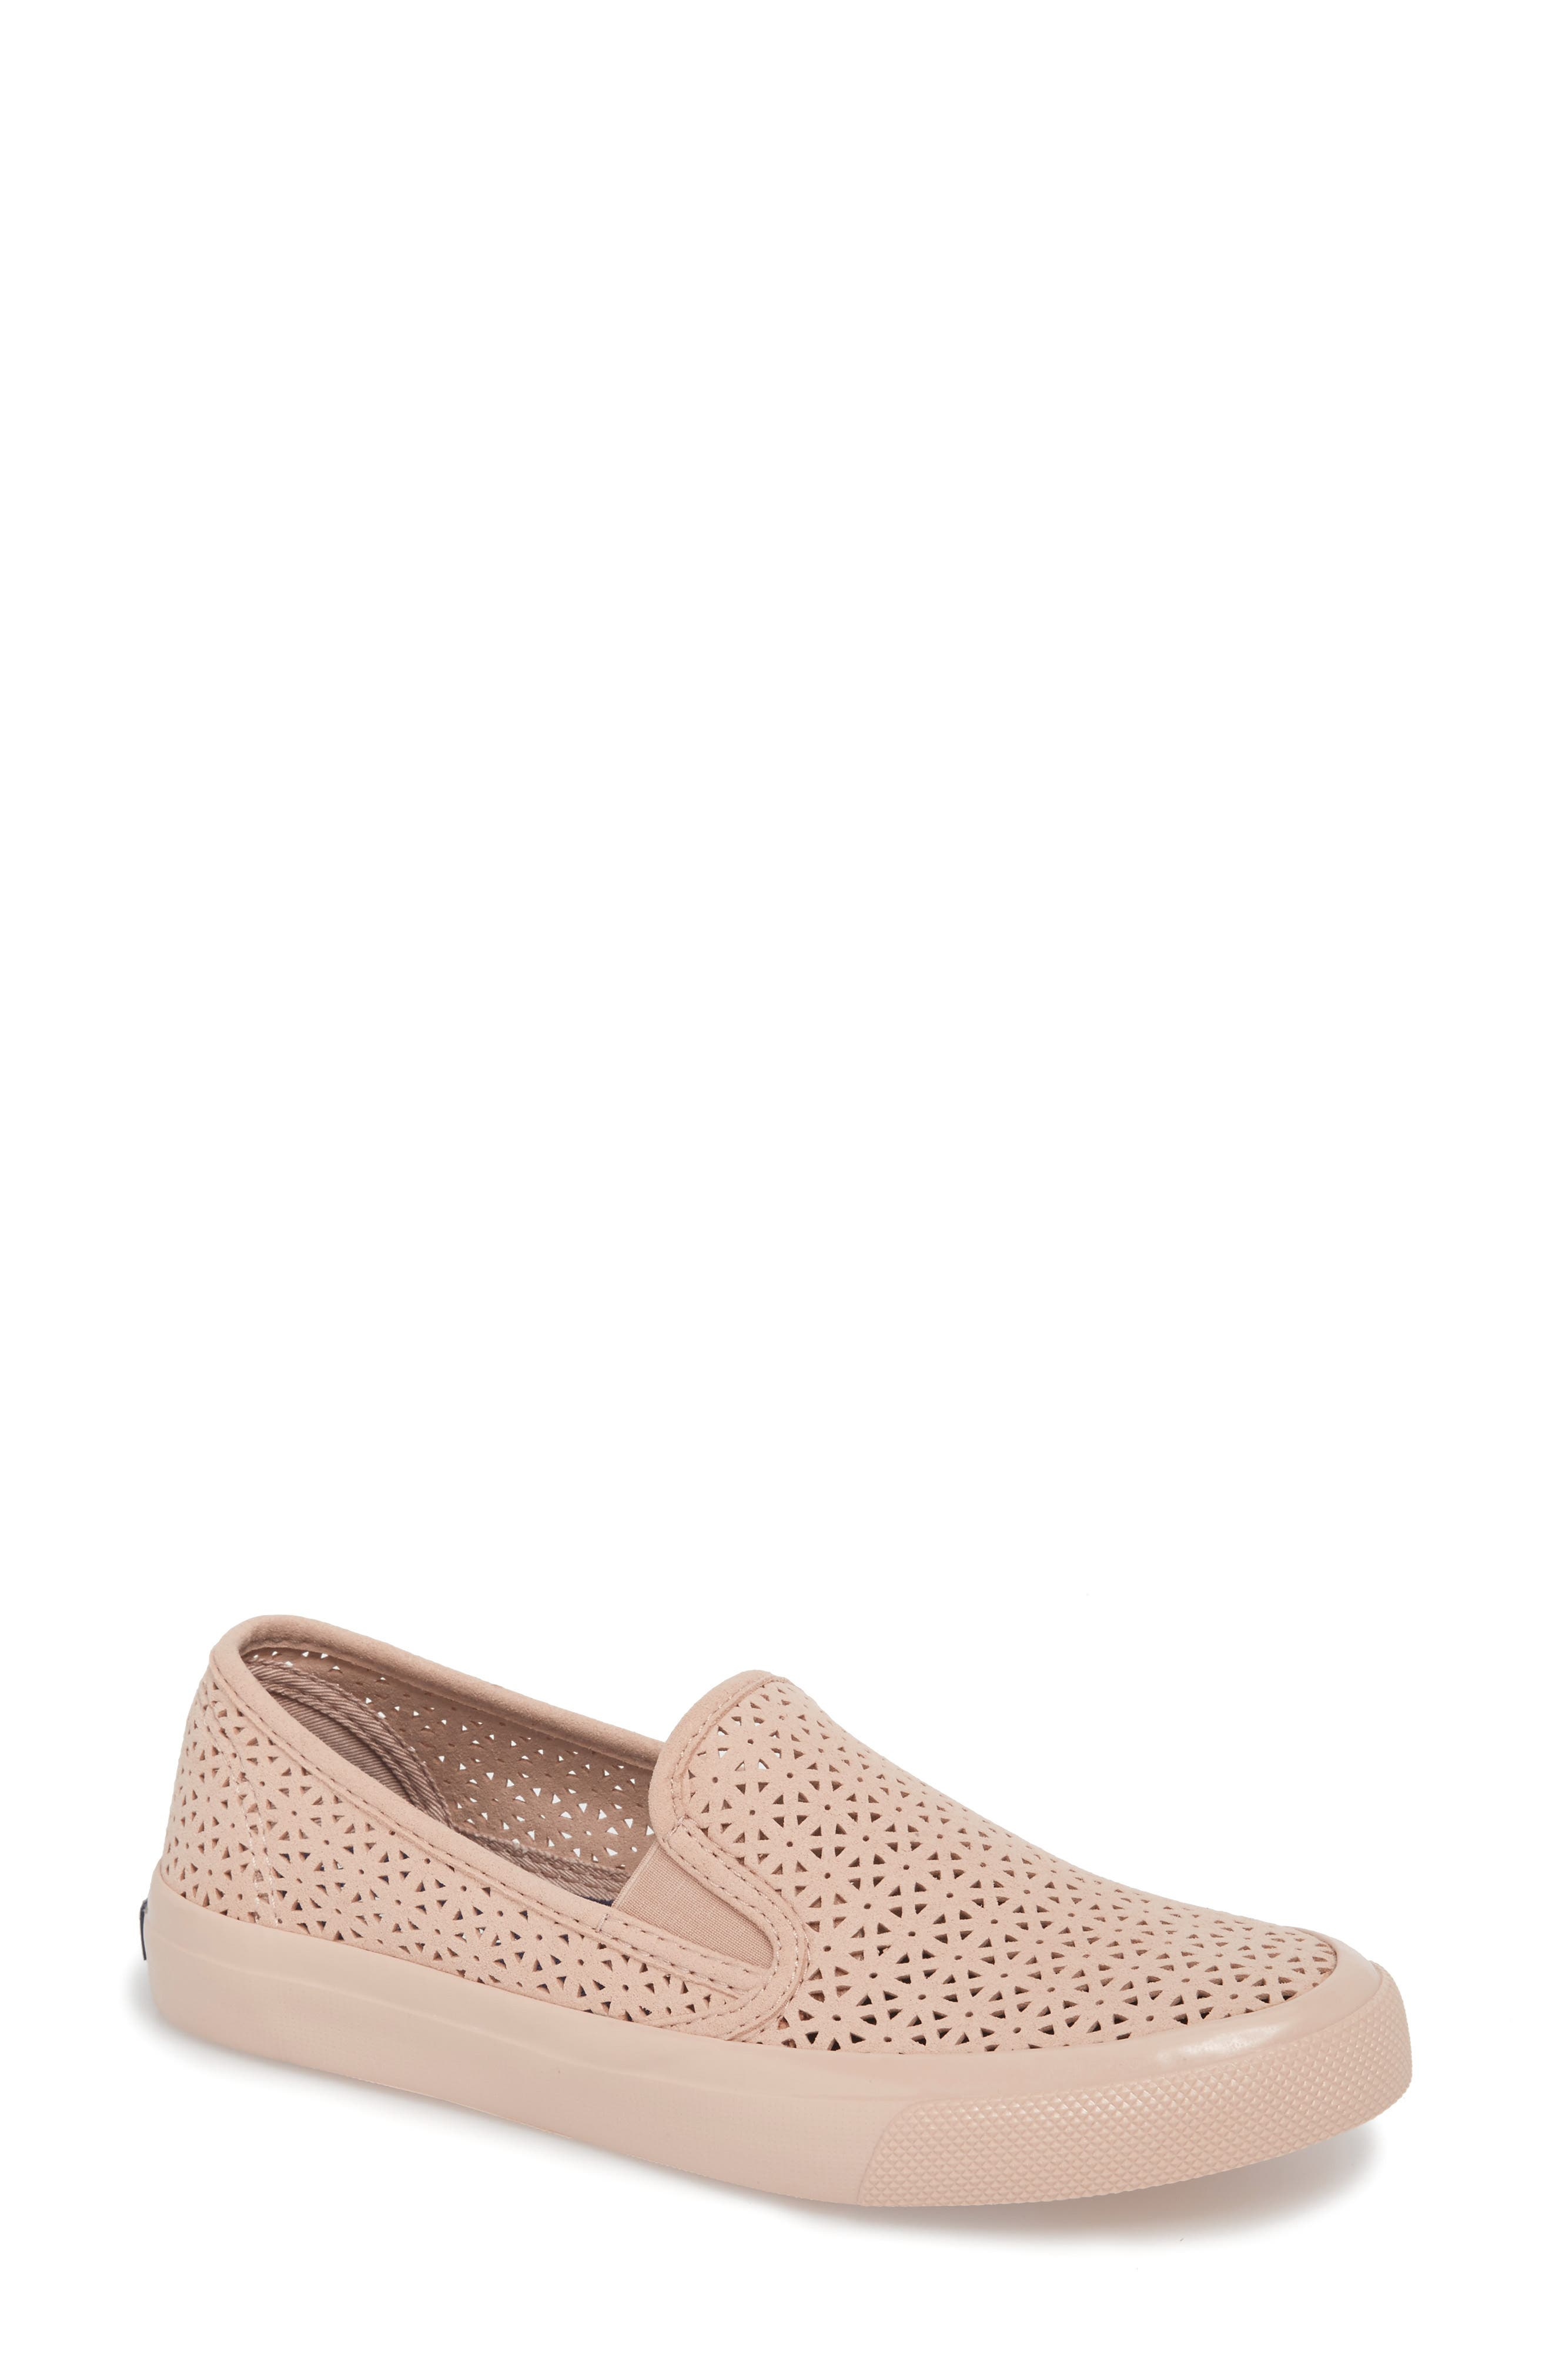 Main Image - Sperry Seaside Nautical Perforated Slip-On Sneaker (Women)